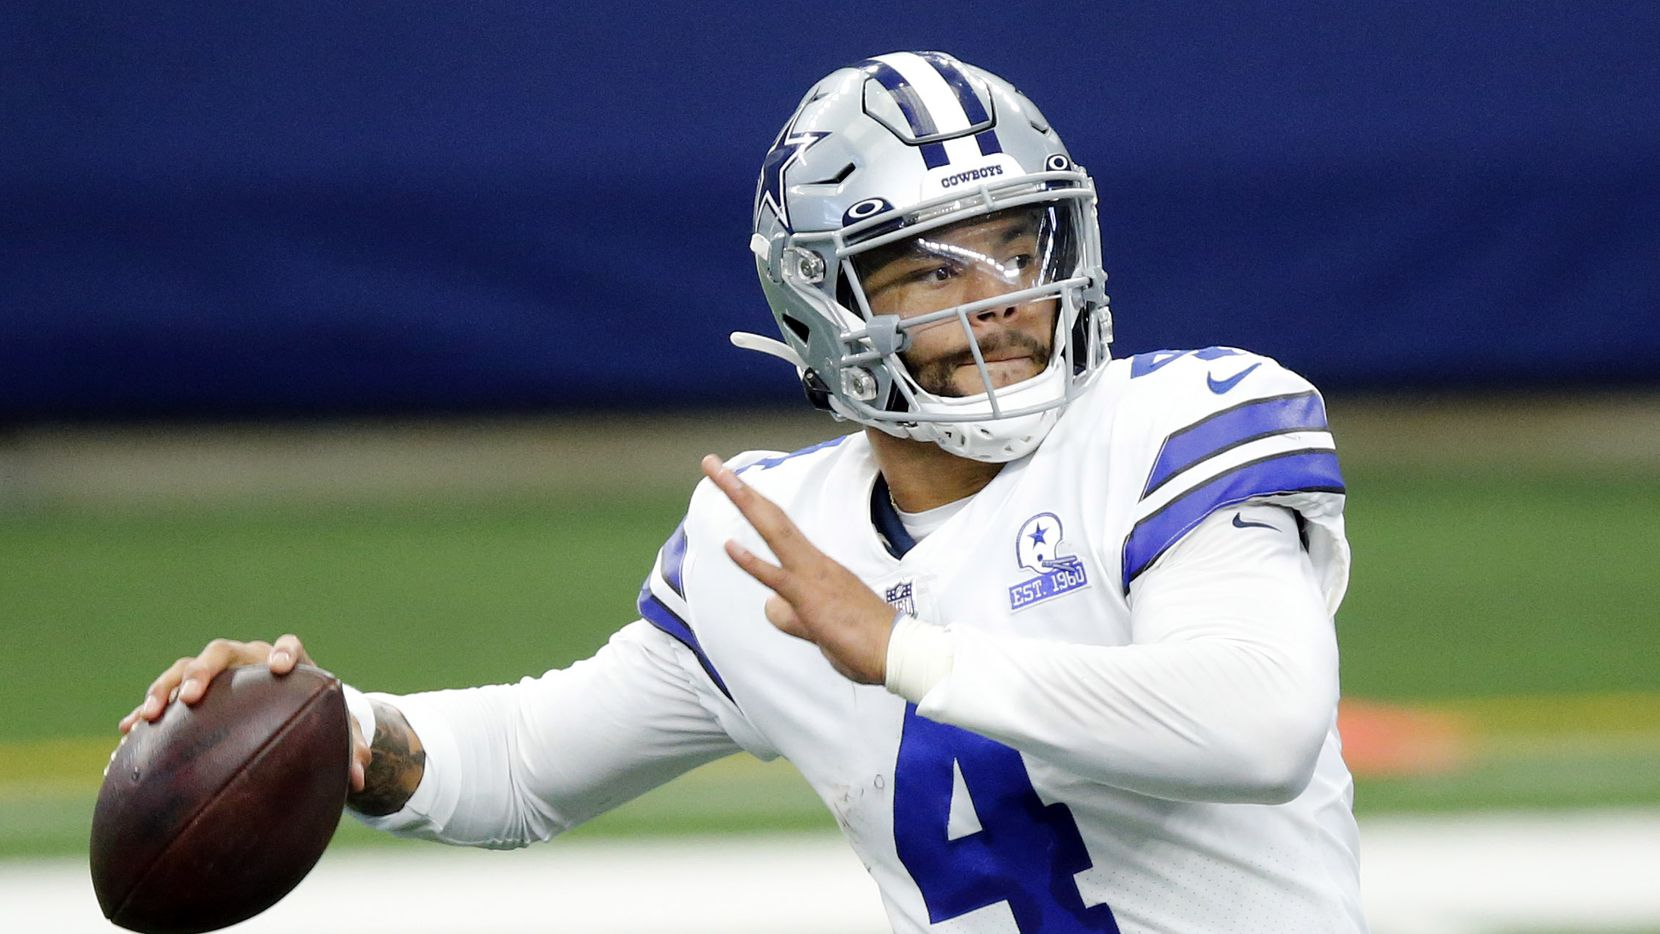 Dallas Cowboys quarterback Dak Prescott (4) throws a fourth quarter pass against the Cleveland Browns at AT&T Stadium in Arlington, Texas, Sunday, October 4, 2020.